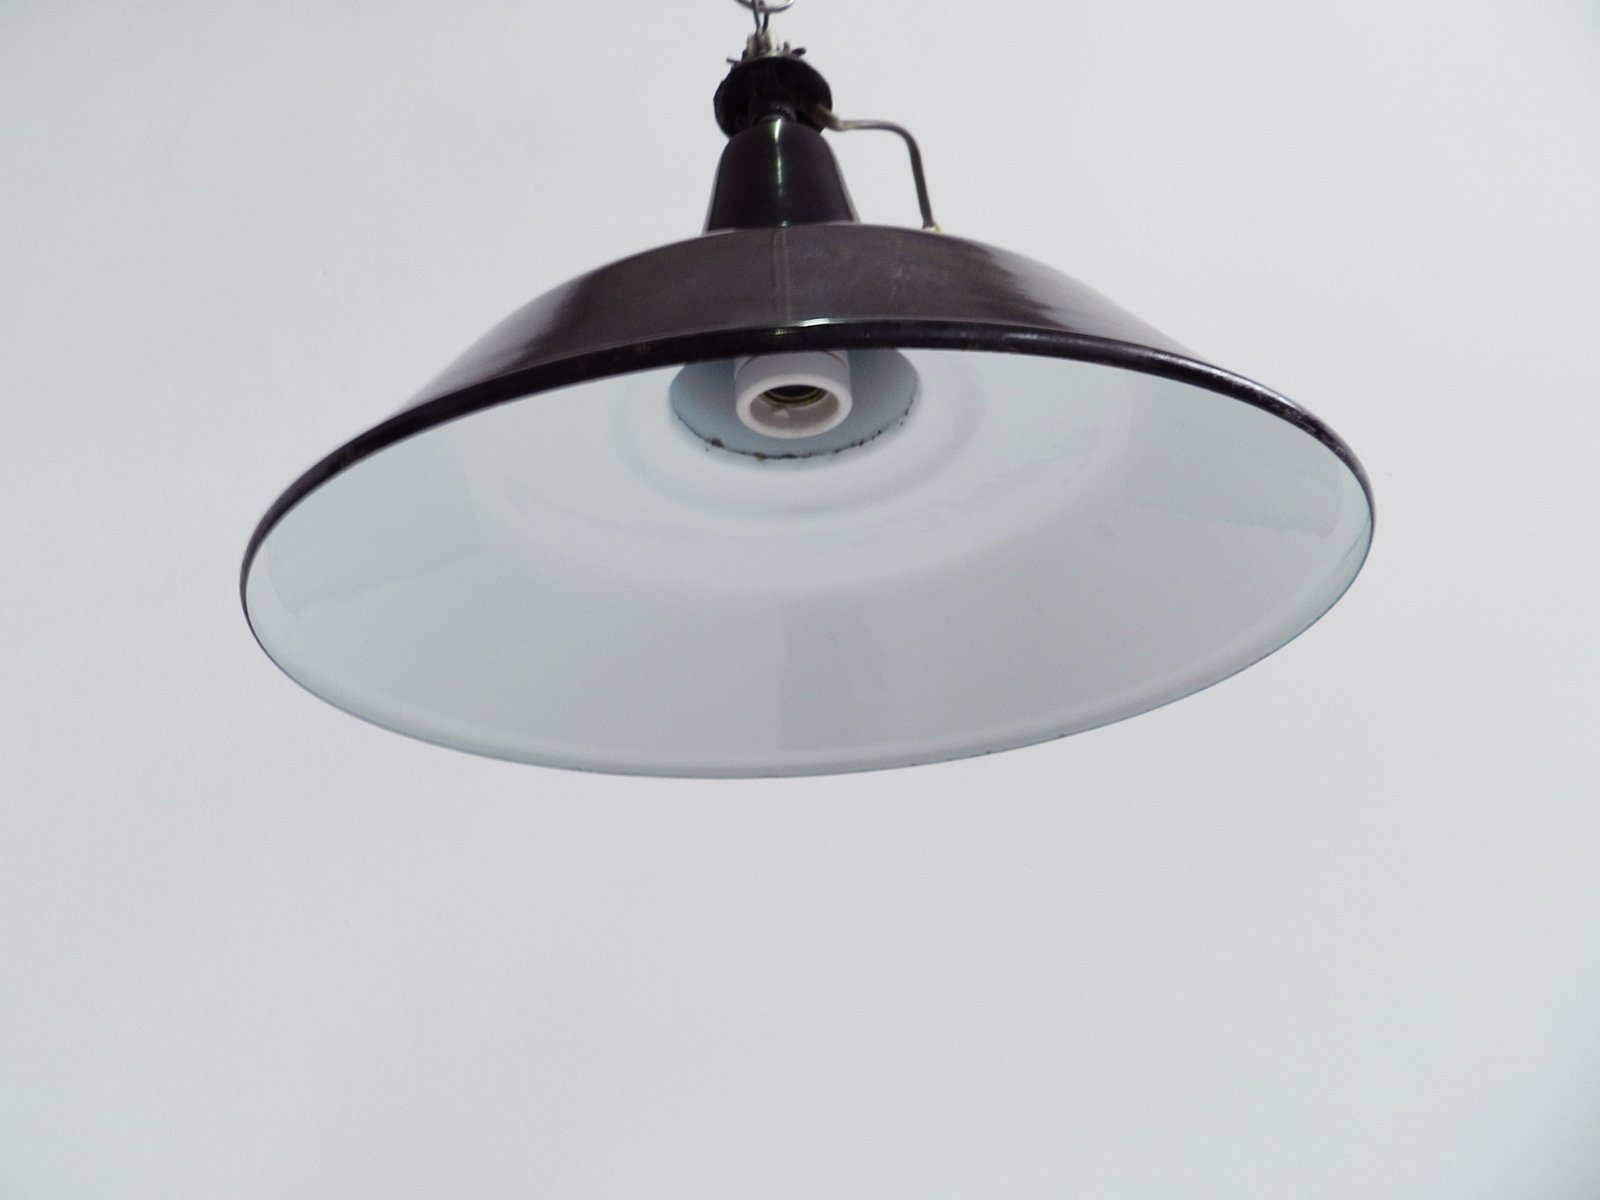 Lampe suspension vintage industrielle suisse en vente sur pamono - Lampe suspension industrielle ...